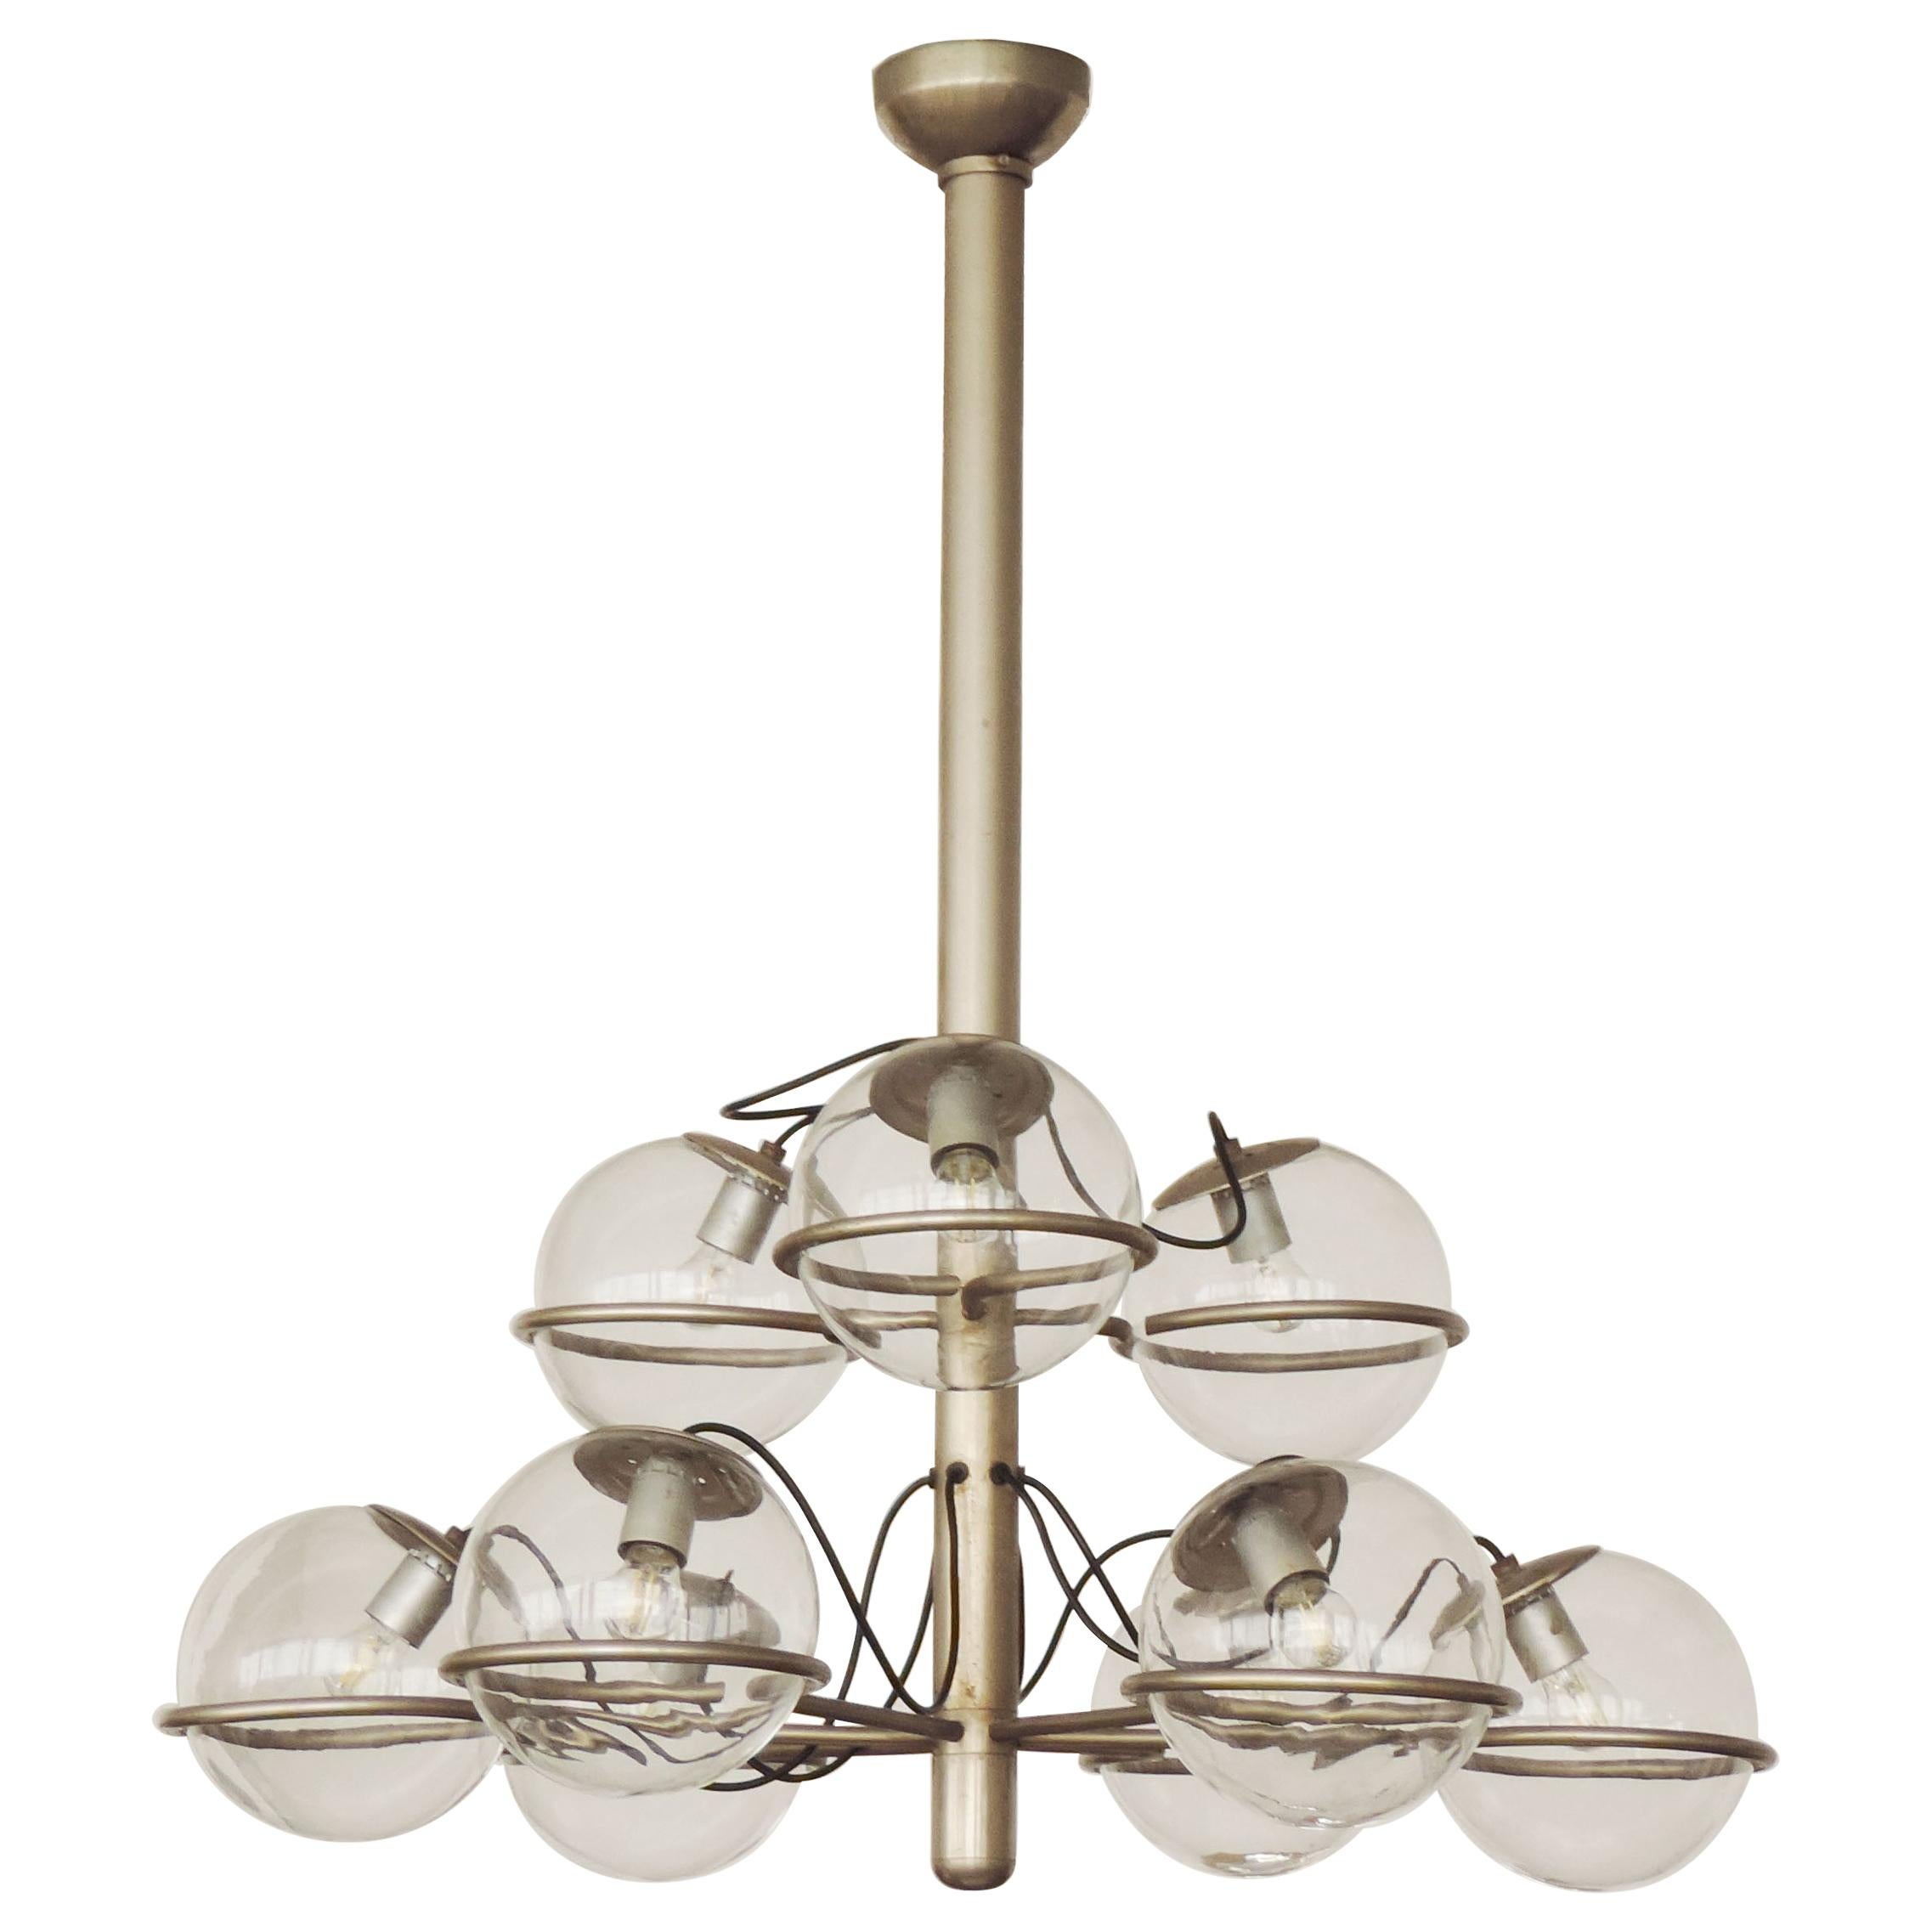 Monumental Ceiling Lamp Attributed to Gino Sarfatti, Italy, 1960s